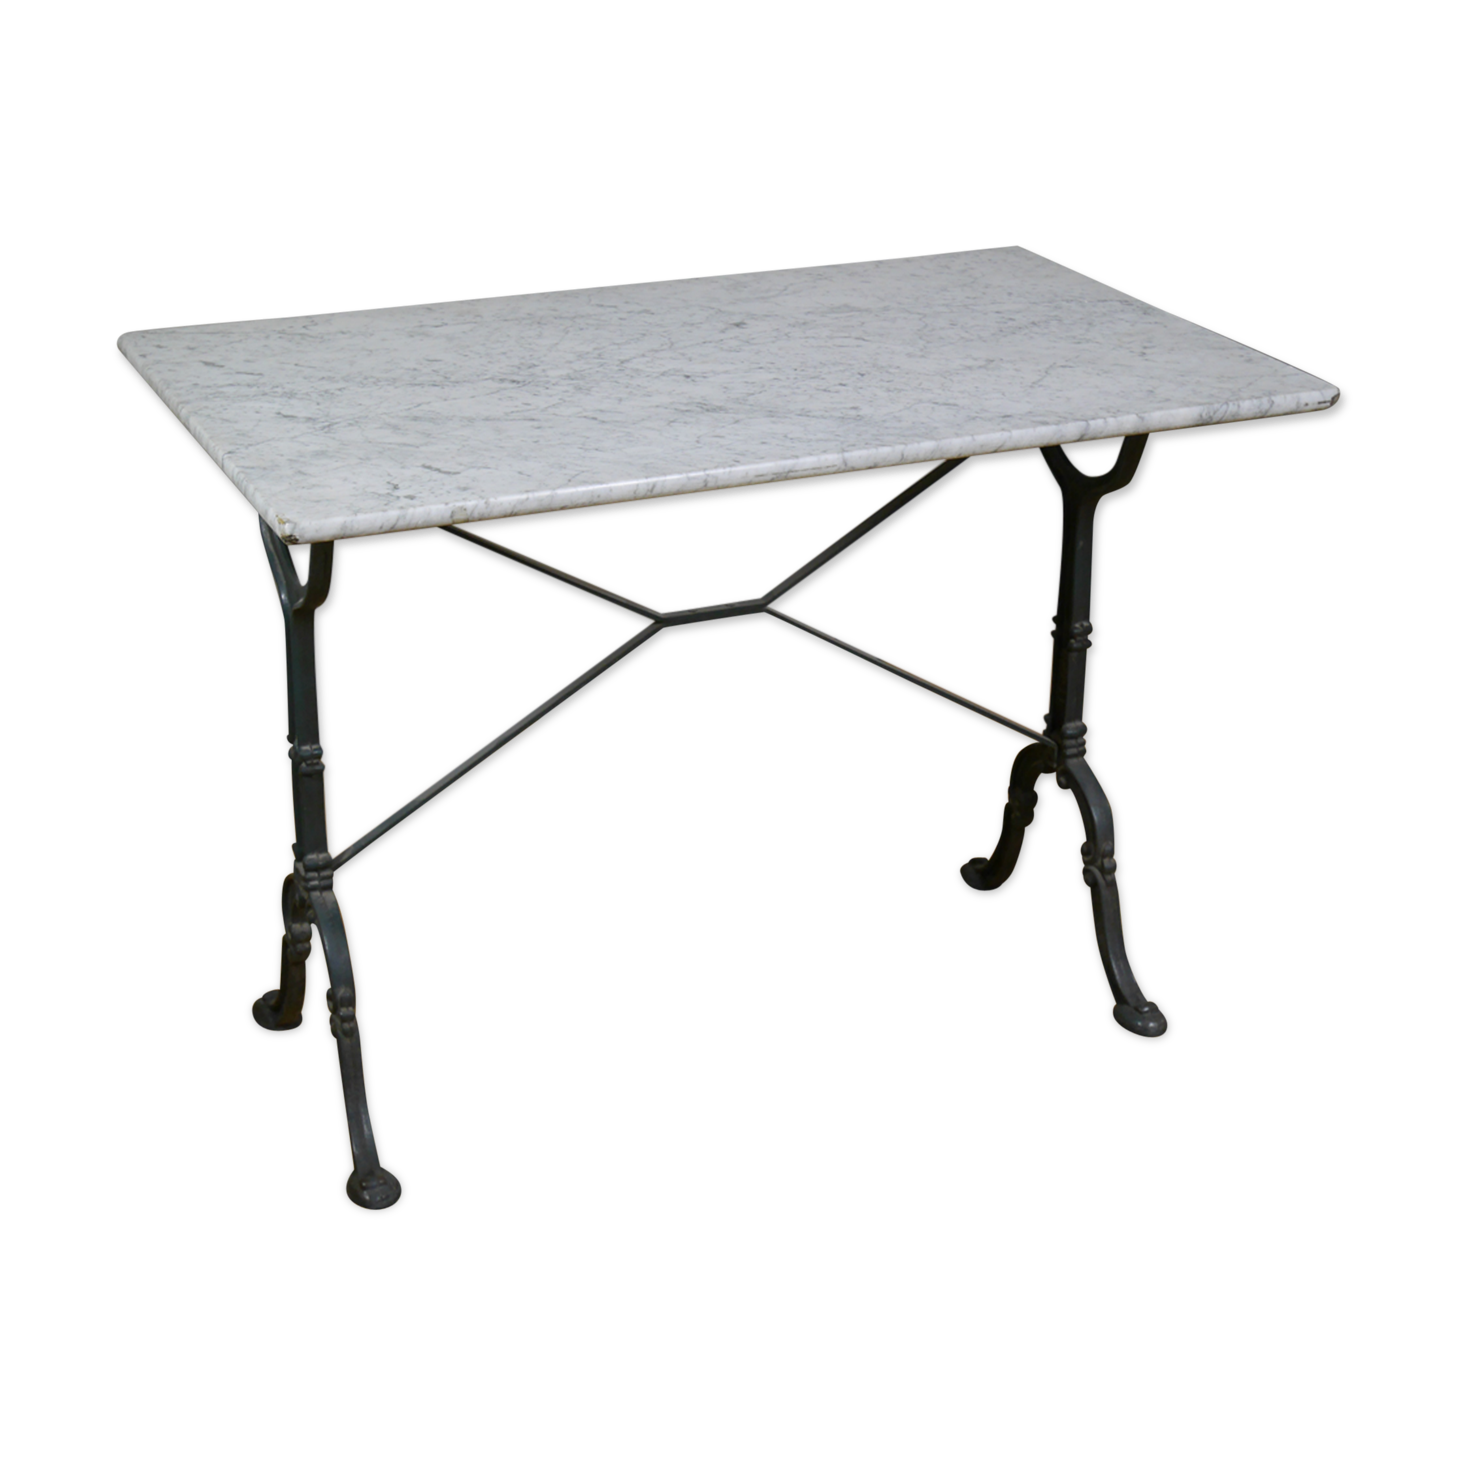 Table bistrot marbre ronde pied fonte good mignon table - Table bistrot marbre ronde pied fonte ...